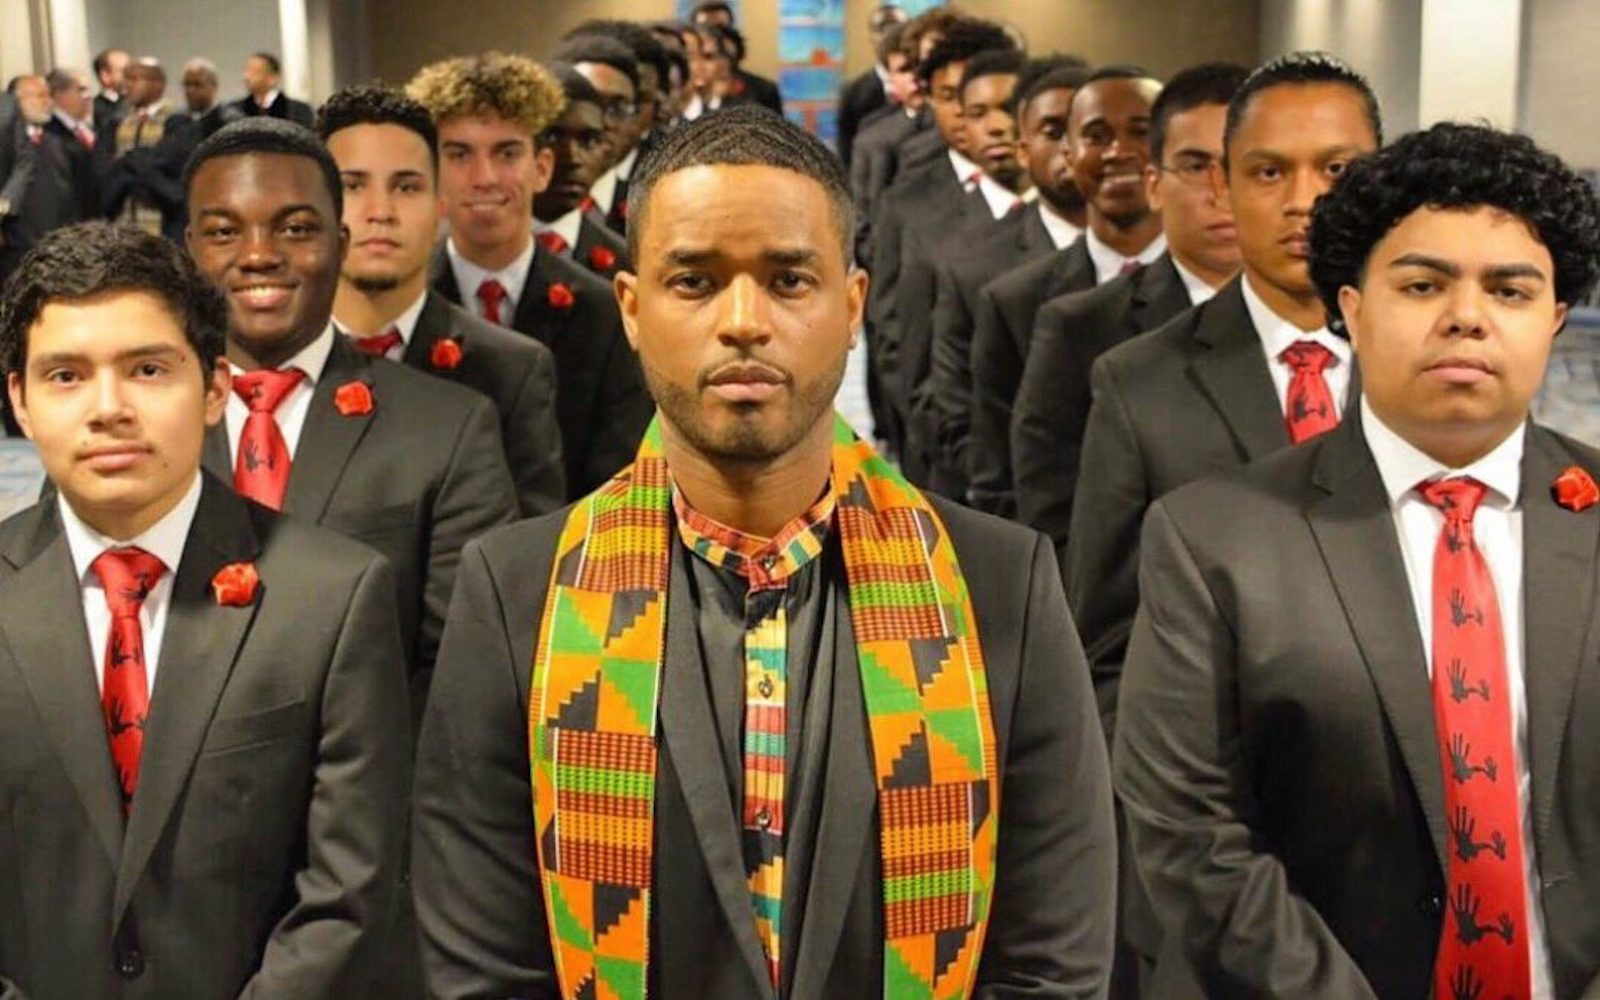 500 African American Male Role Models of Excellence, Larenz Tate, African American Community, Black Community, KOLUMN Magazine, KOLUMN, KINDR'D Magazine, KINDR'D, Willoughby Avenue, Wriit,